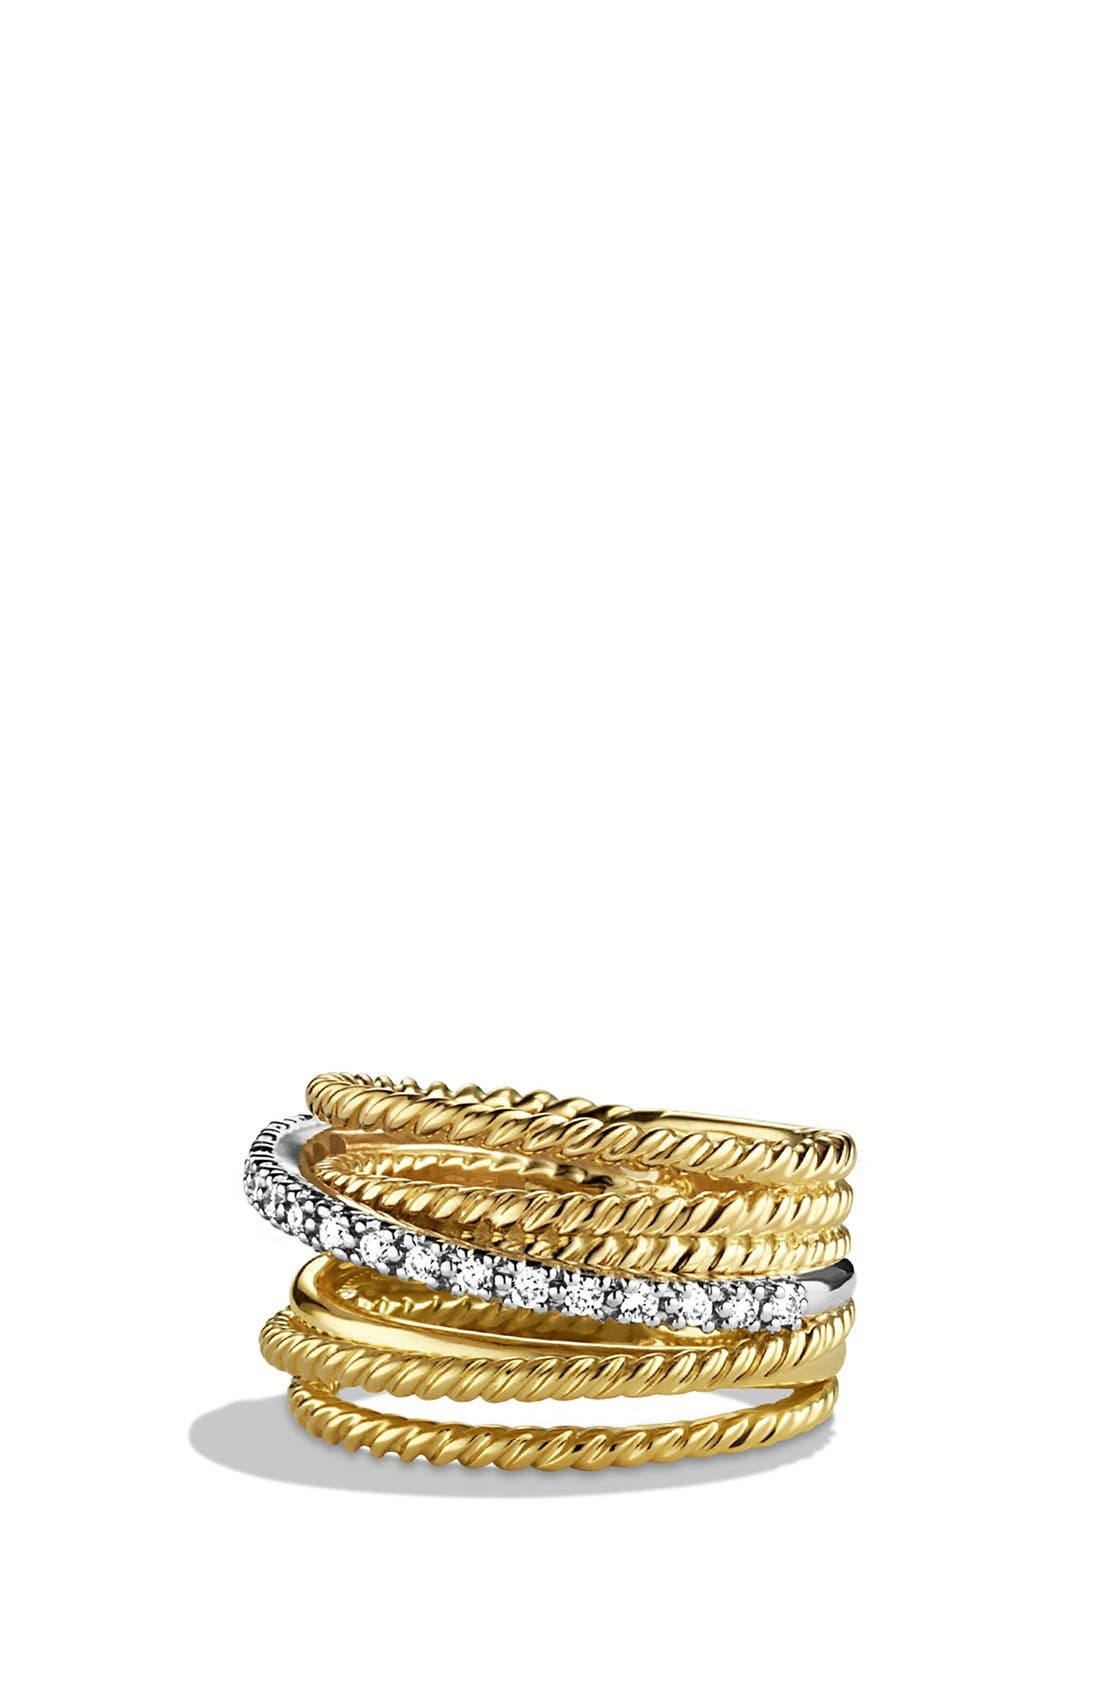 'DY Crossover' Ring with Diamonds in Gold,                             Main thumbnail 1, color,                             DIAMOND